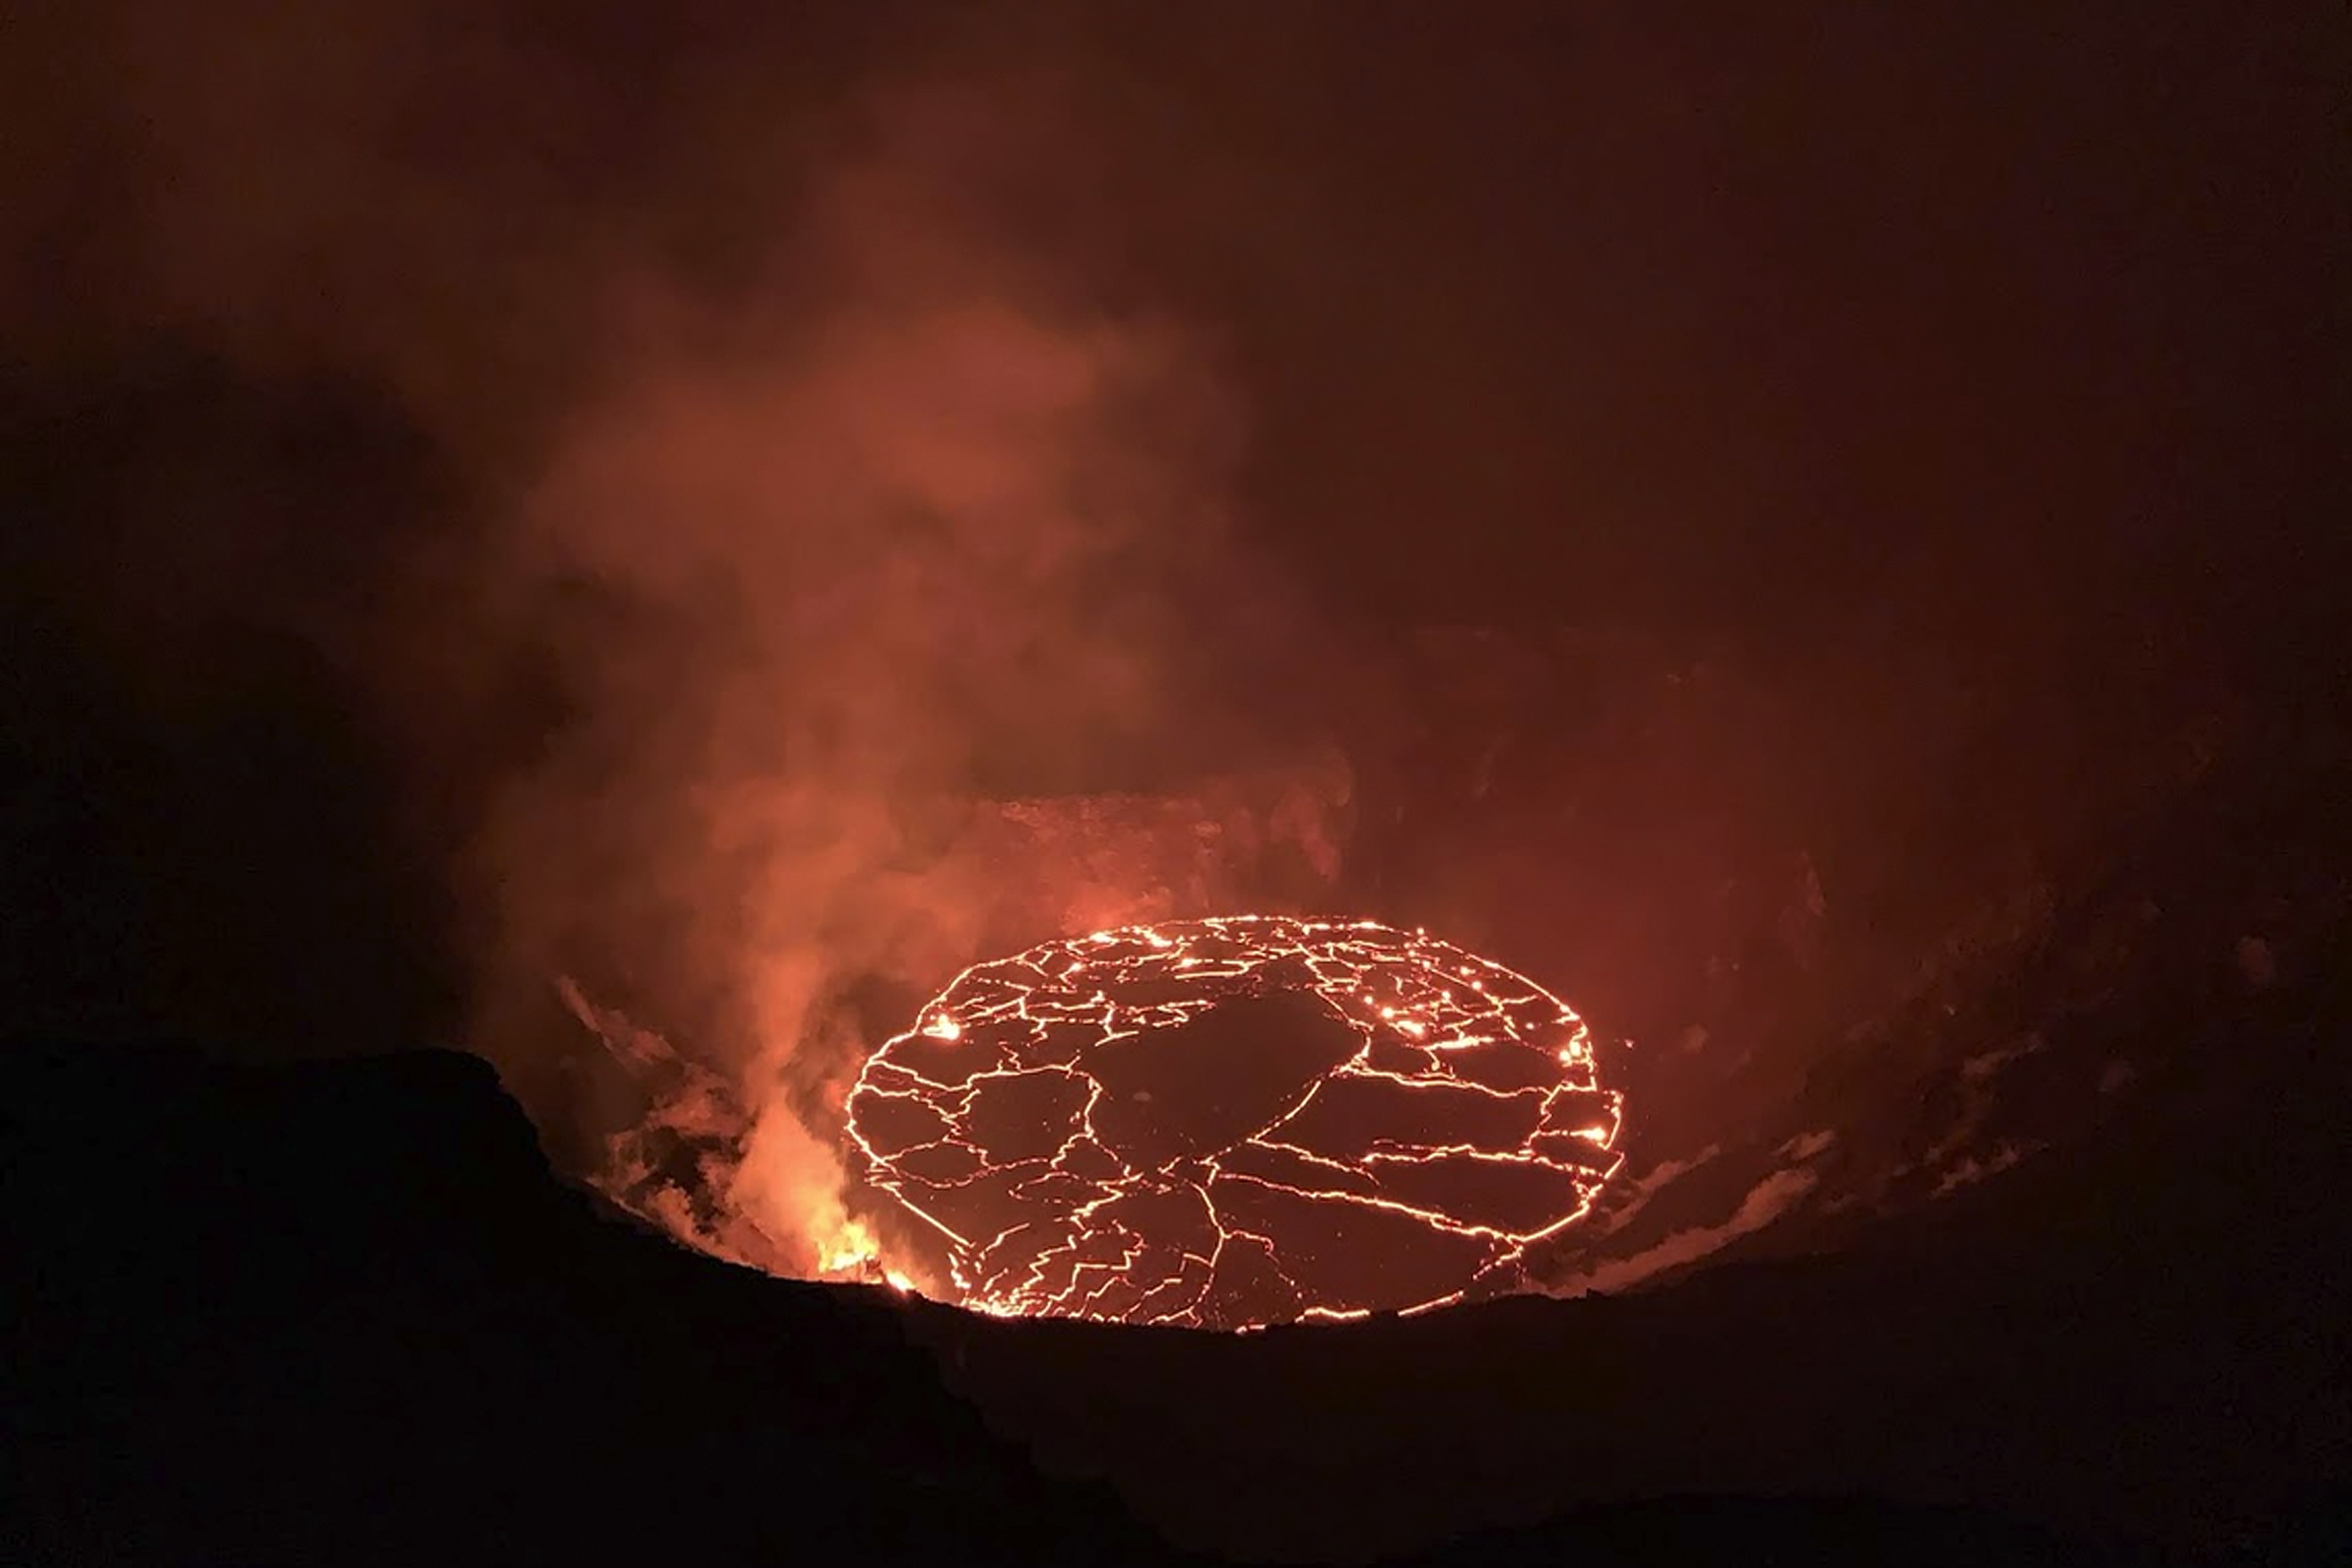 This Dec. 28, 2020, file photo provided by the U.S. Geological Survey shows the eruption at Hawaii's Kilauea Volcano. The U.S. Geological Survey's Hawaiian Volcano Observatory updated the status of the Big Island volcano on Wednesday, May 26, 2021, to say that it is no longer erupting.